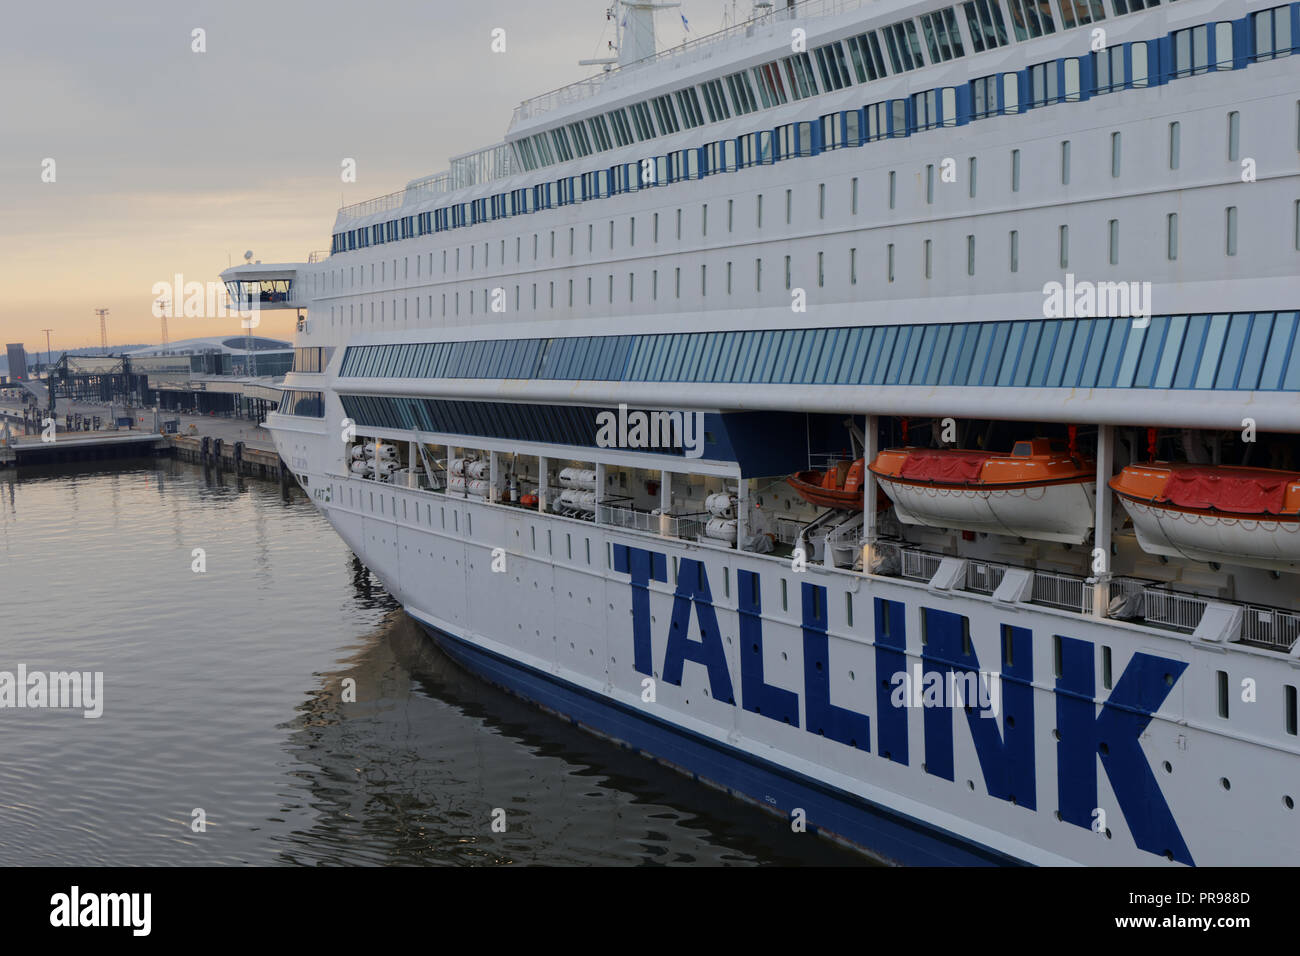 Helsinki, Finland - April 15, 2018: Cruise ship Silja Europa is moored at West Terminal. Built in 1993 with passenger capacity of 3000, the ship opera - Stock Image